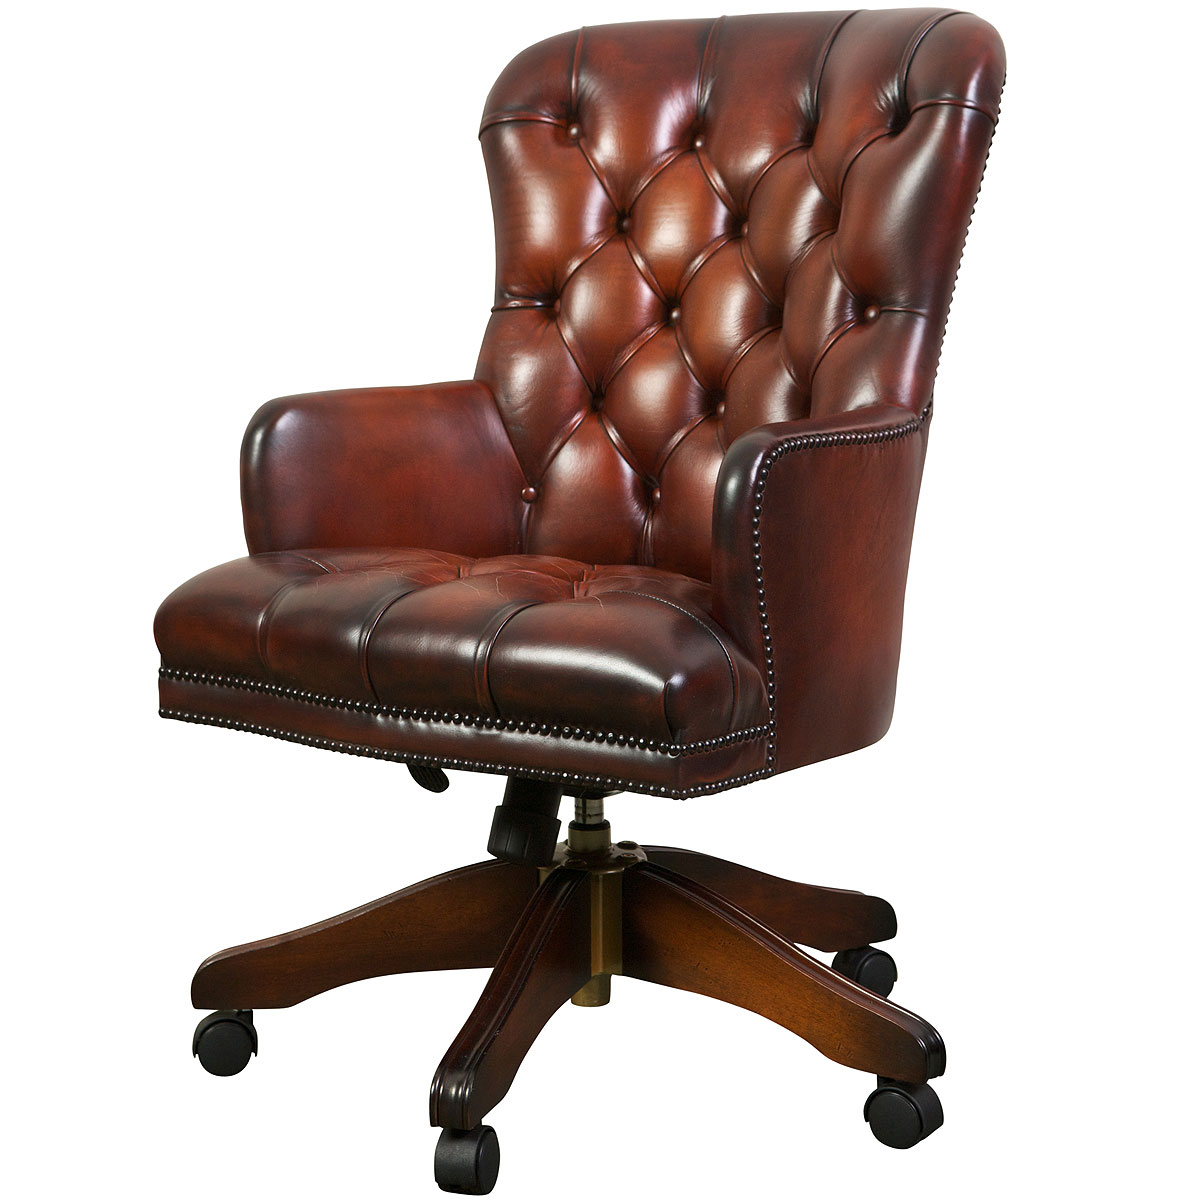 Queen anne swivel chair desk chairs from brights of nettlebed for Queen anne furniture